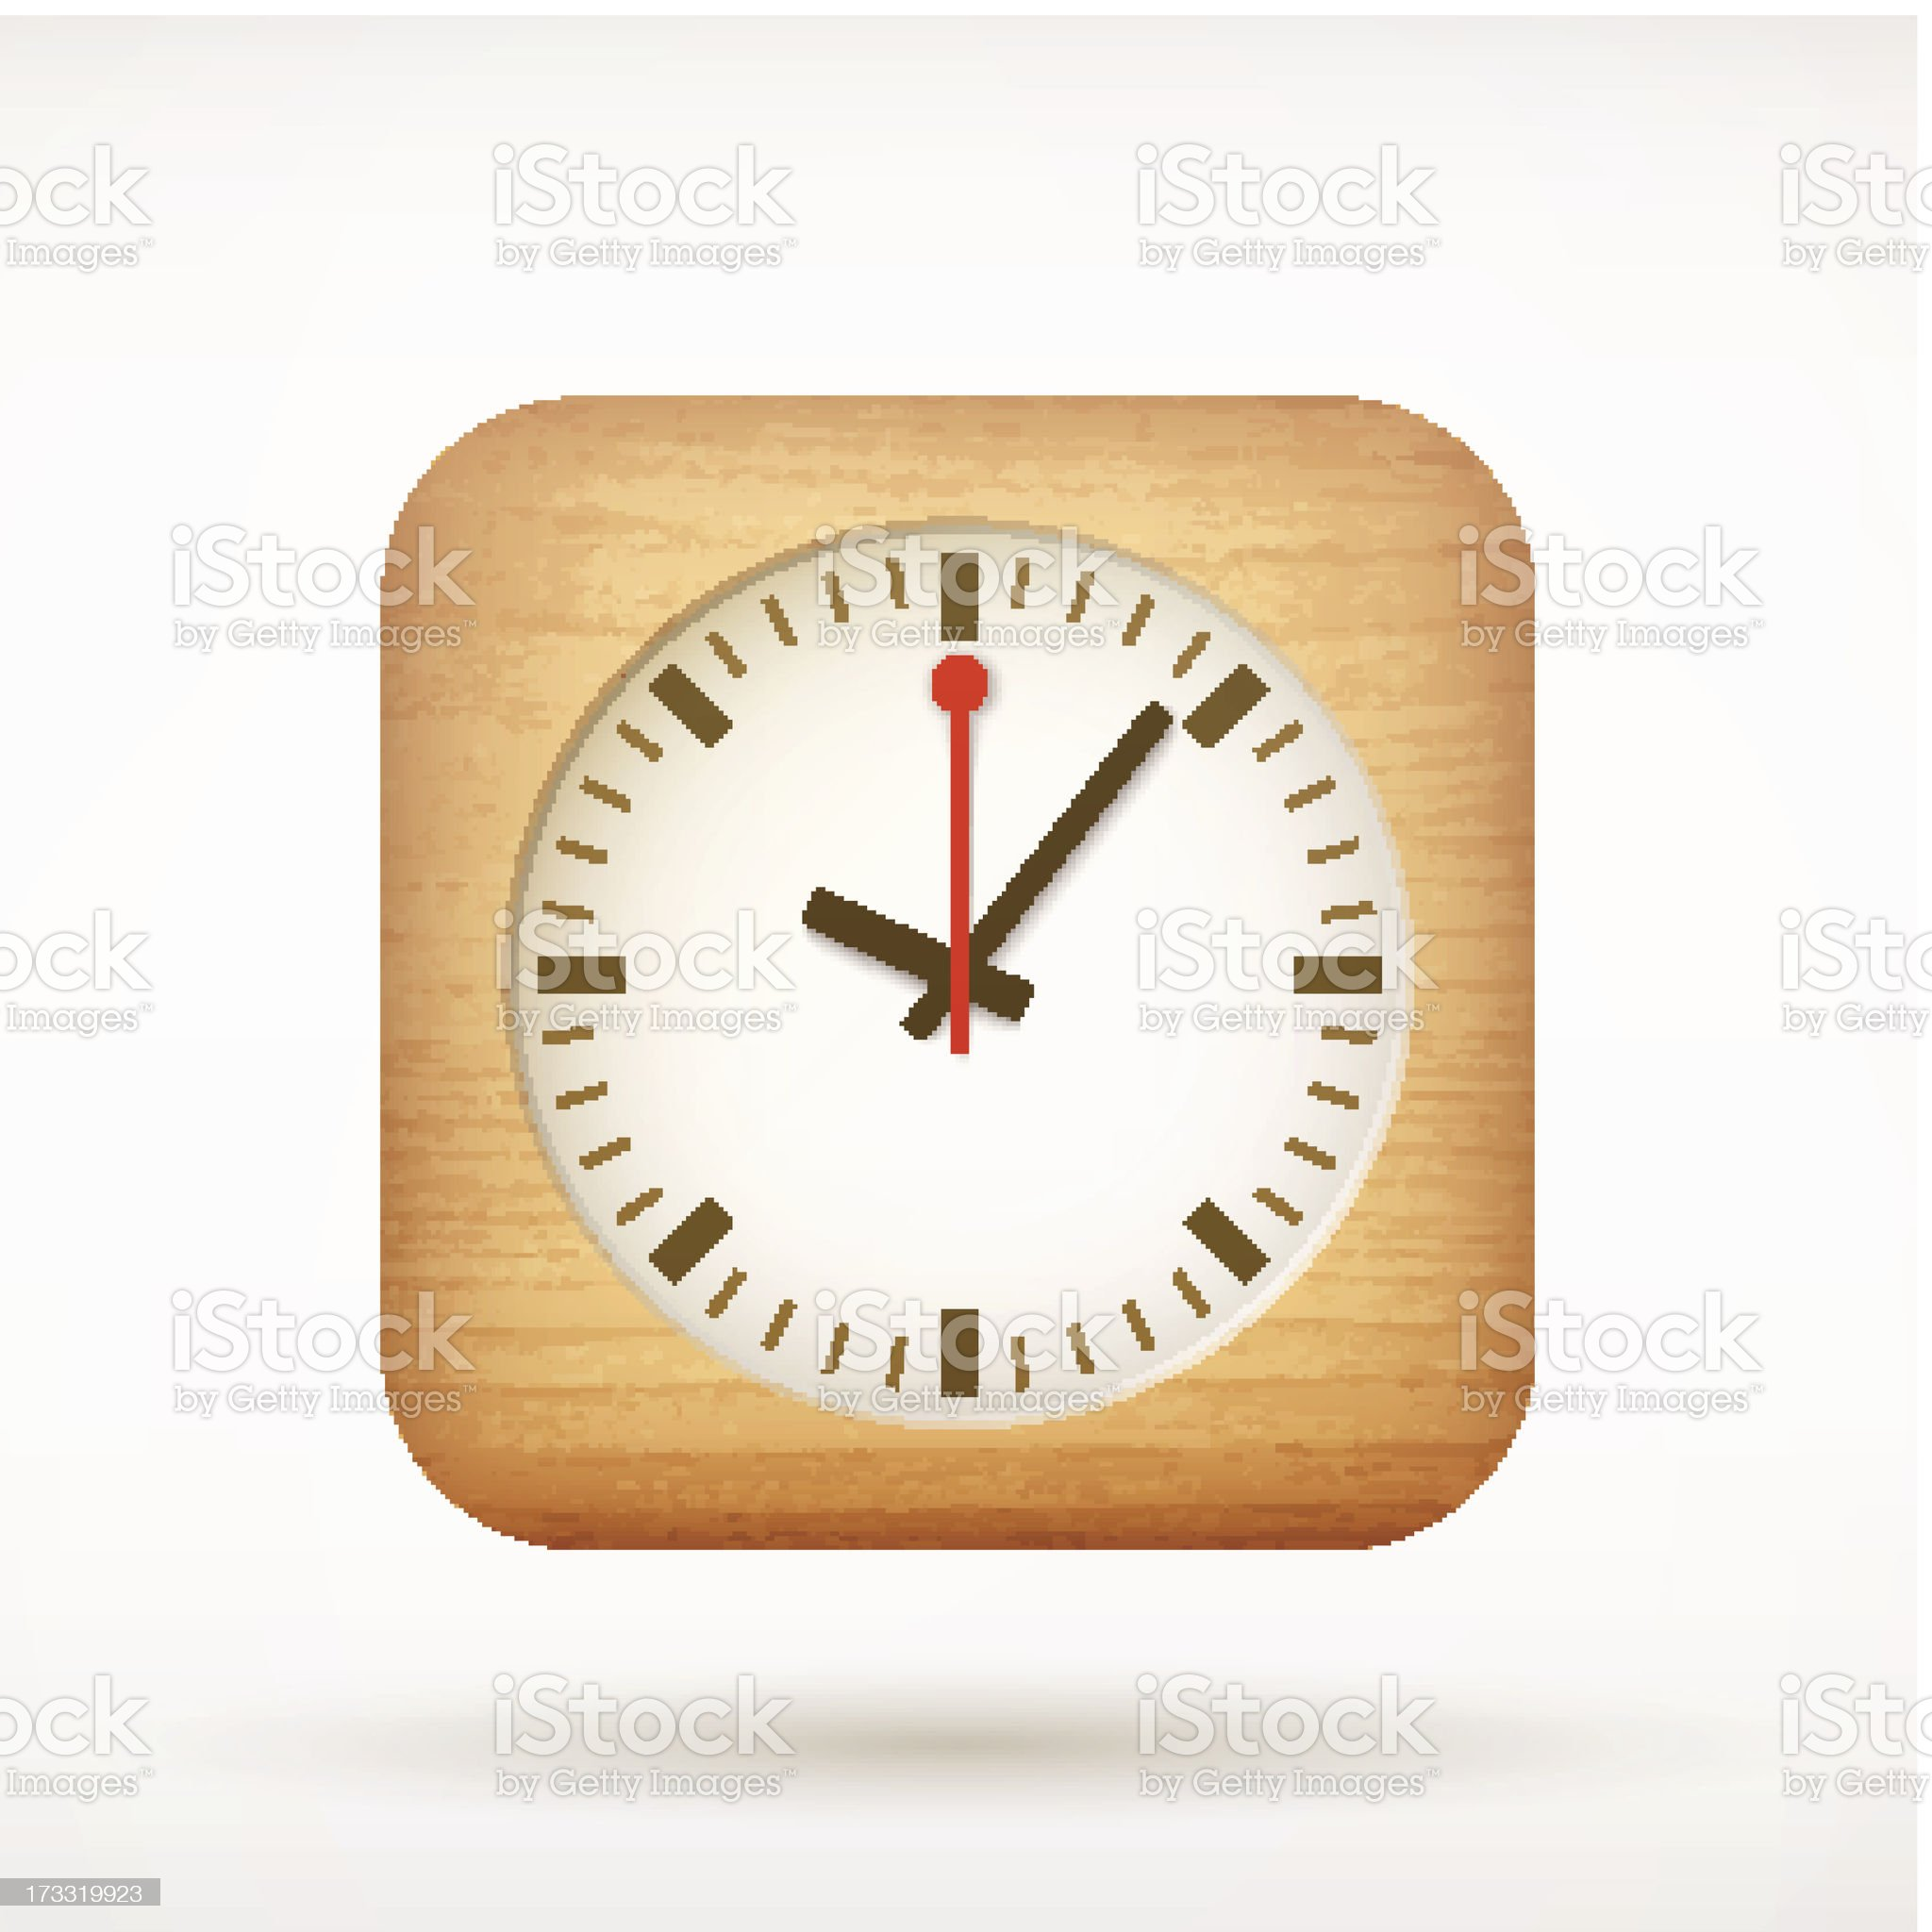 clock app icon on rounded corner square royalty-free stock vector art